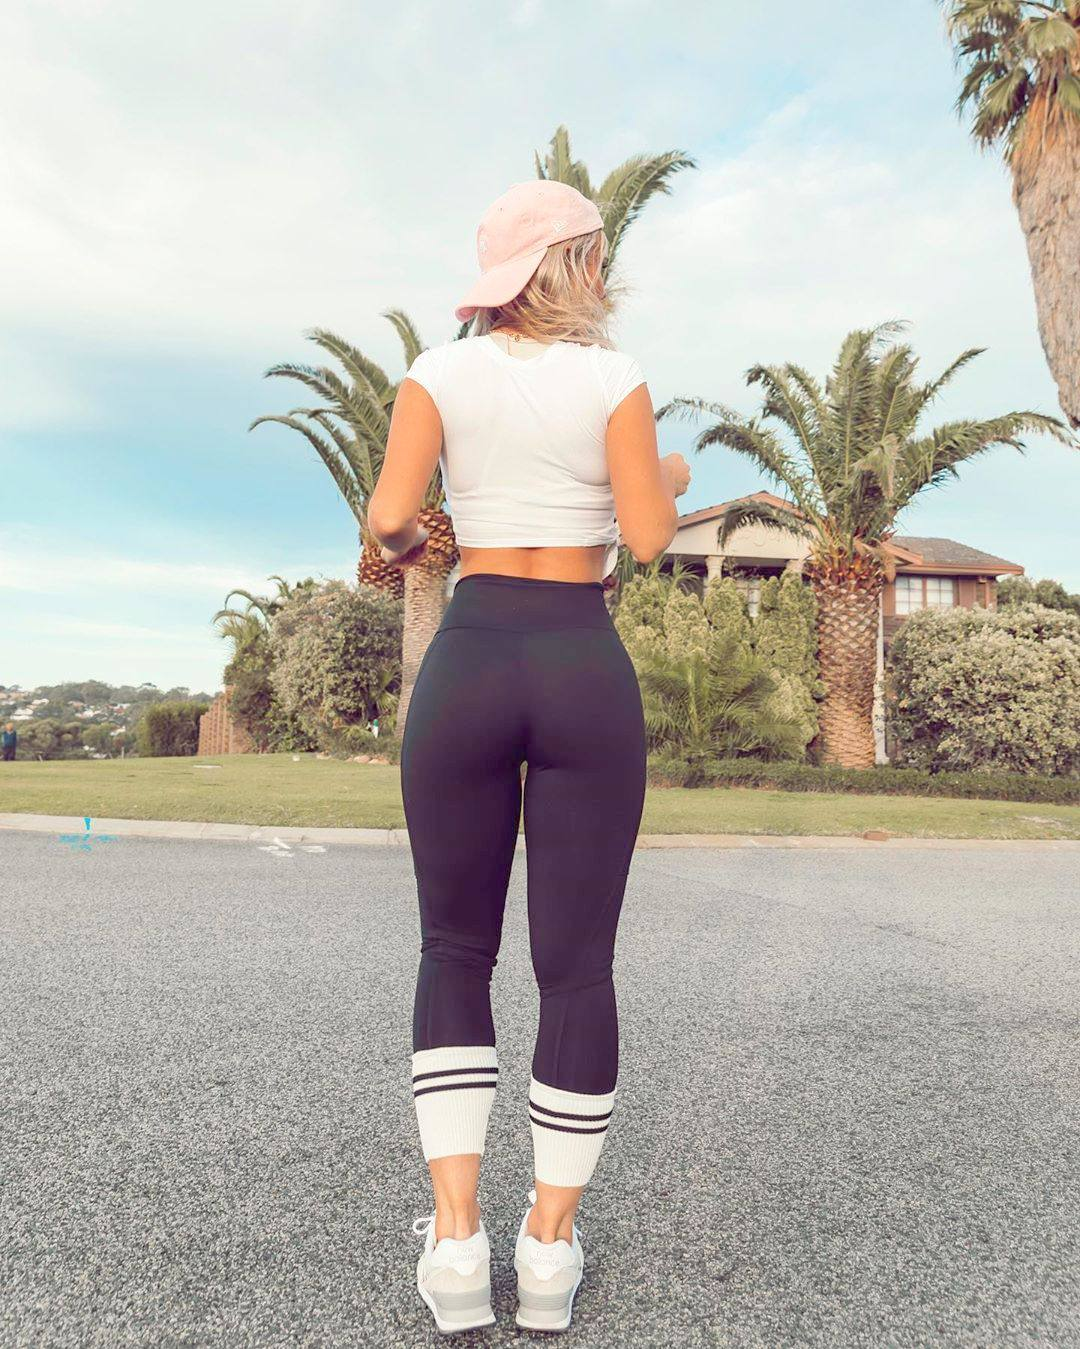 Hilde Osland Hot Ass In Tight Black Leggings 0004